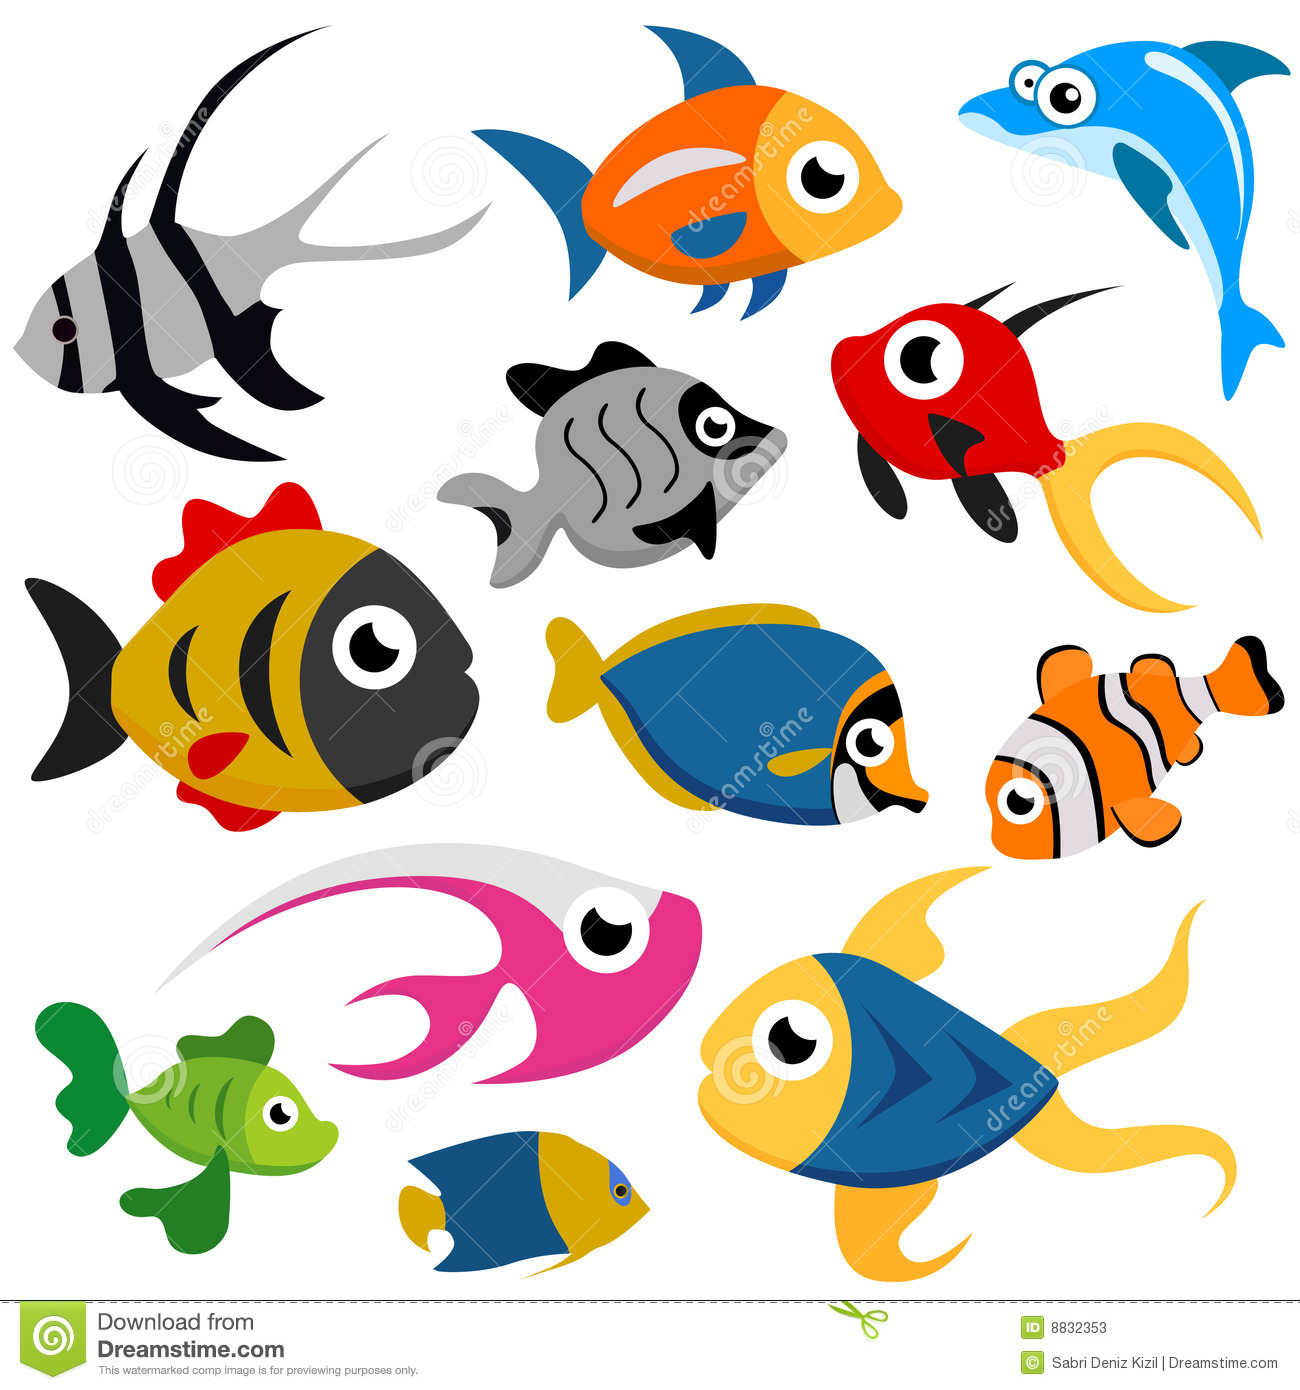 11 Photos of Vector Cartoon Fish